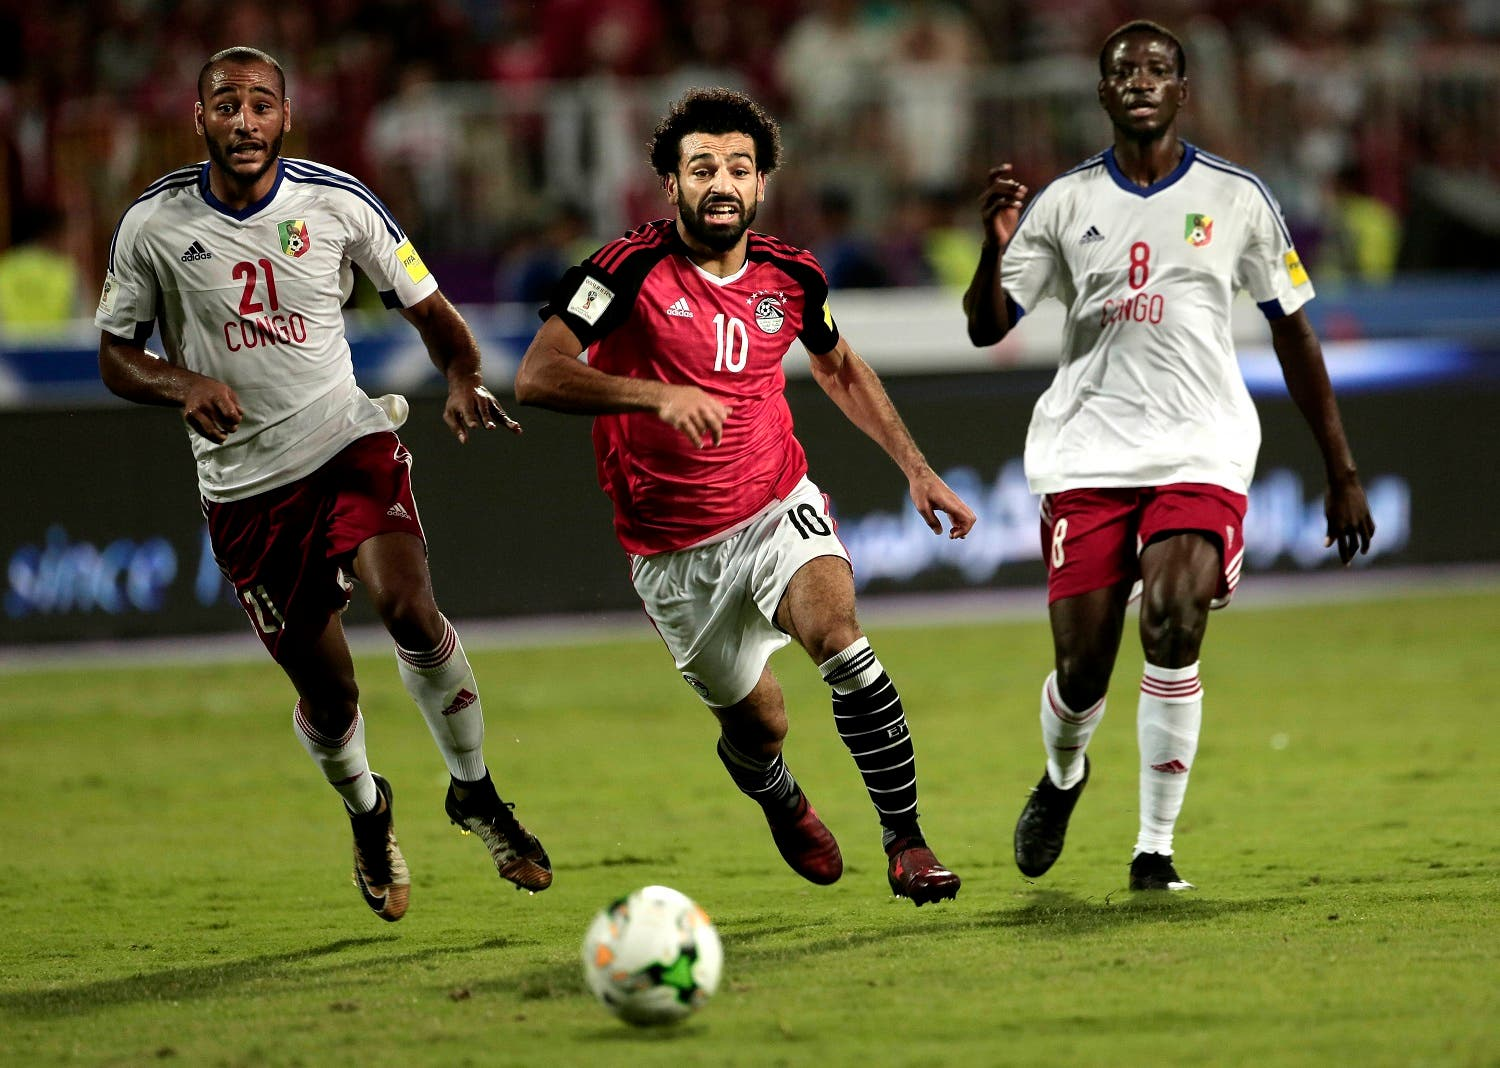 Egypt's Mohamed Salah, (center), battles for the ball with Congo's Delvin N'Dinga, (right), and Tobias Badila during the 2018 World Cup group E qualifying soccer match at the Borg El Arab Stadium in Alexandria, Egypt. (AP)